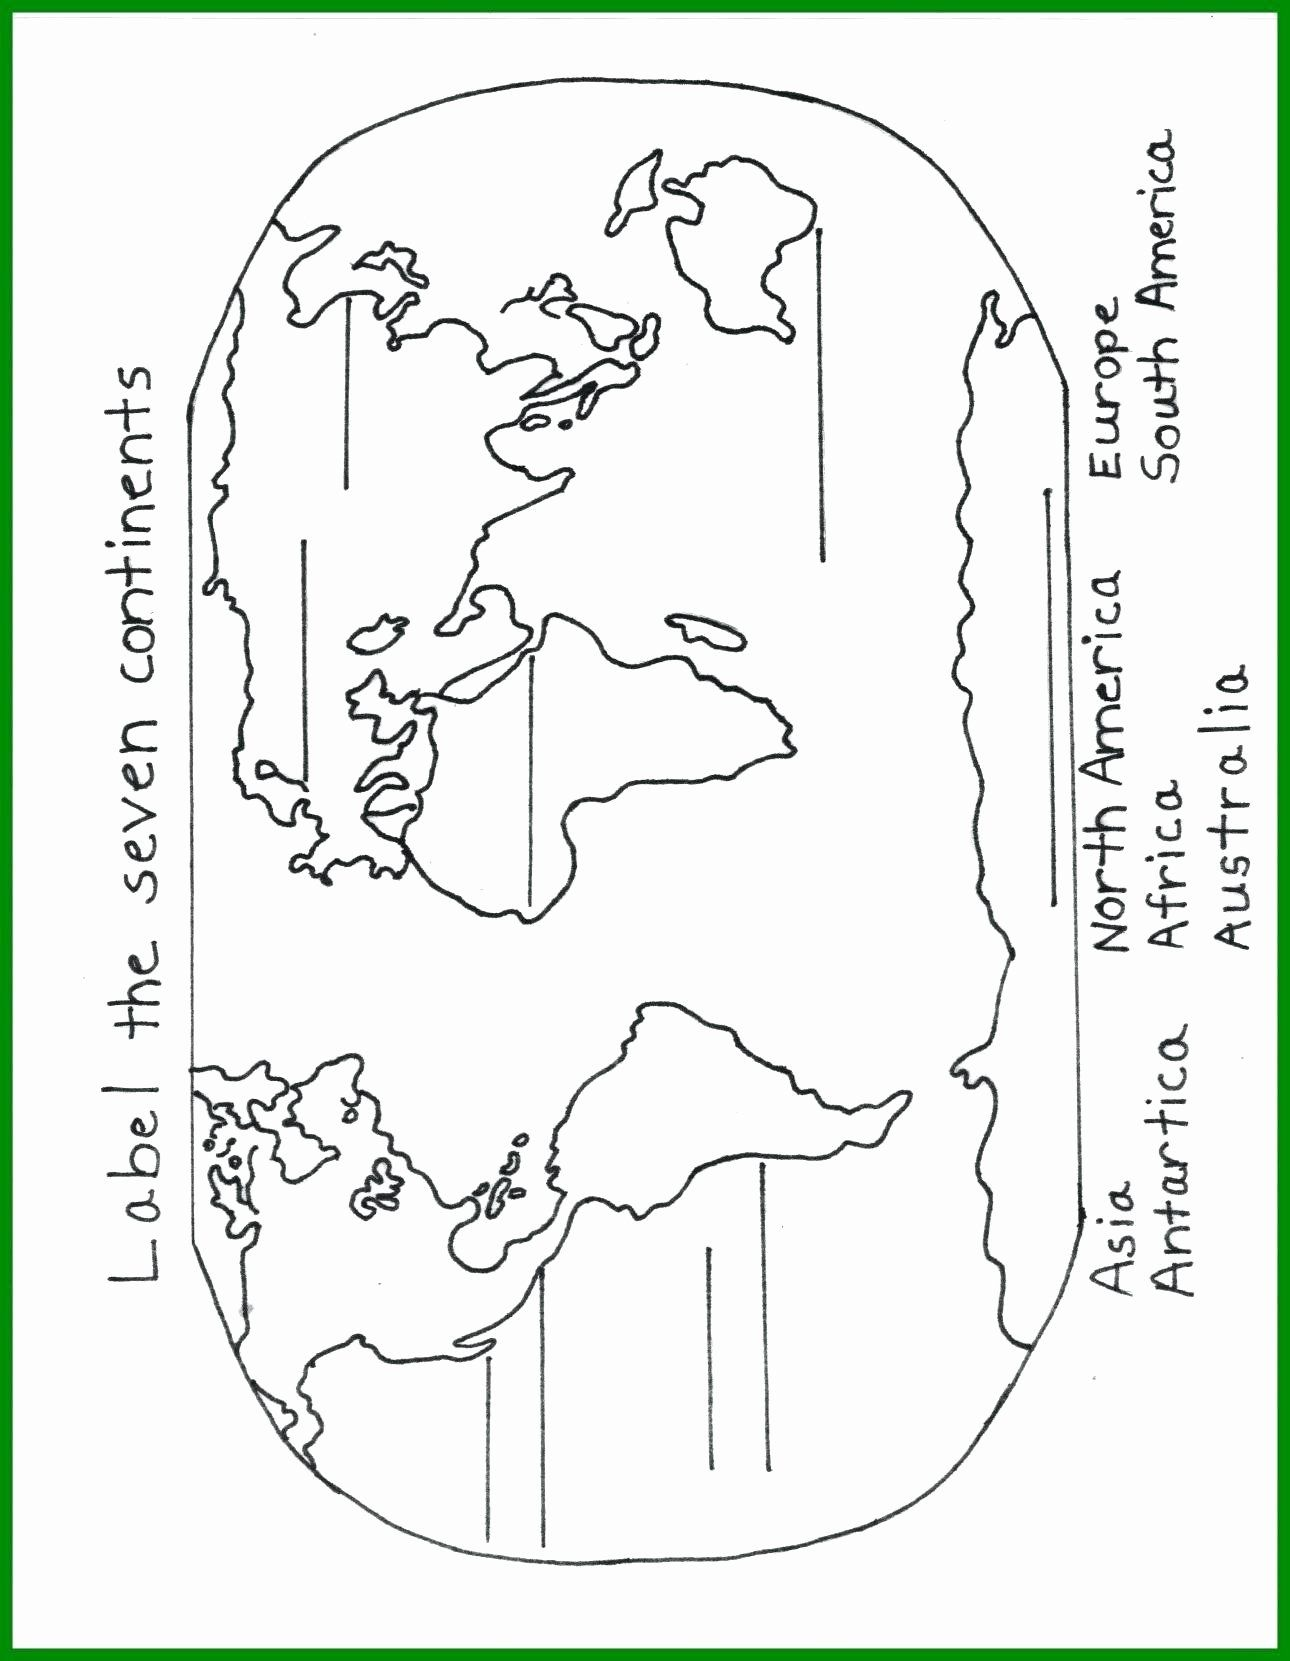 North America Countries Coloring Page With Images